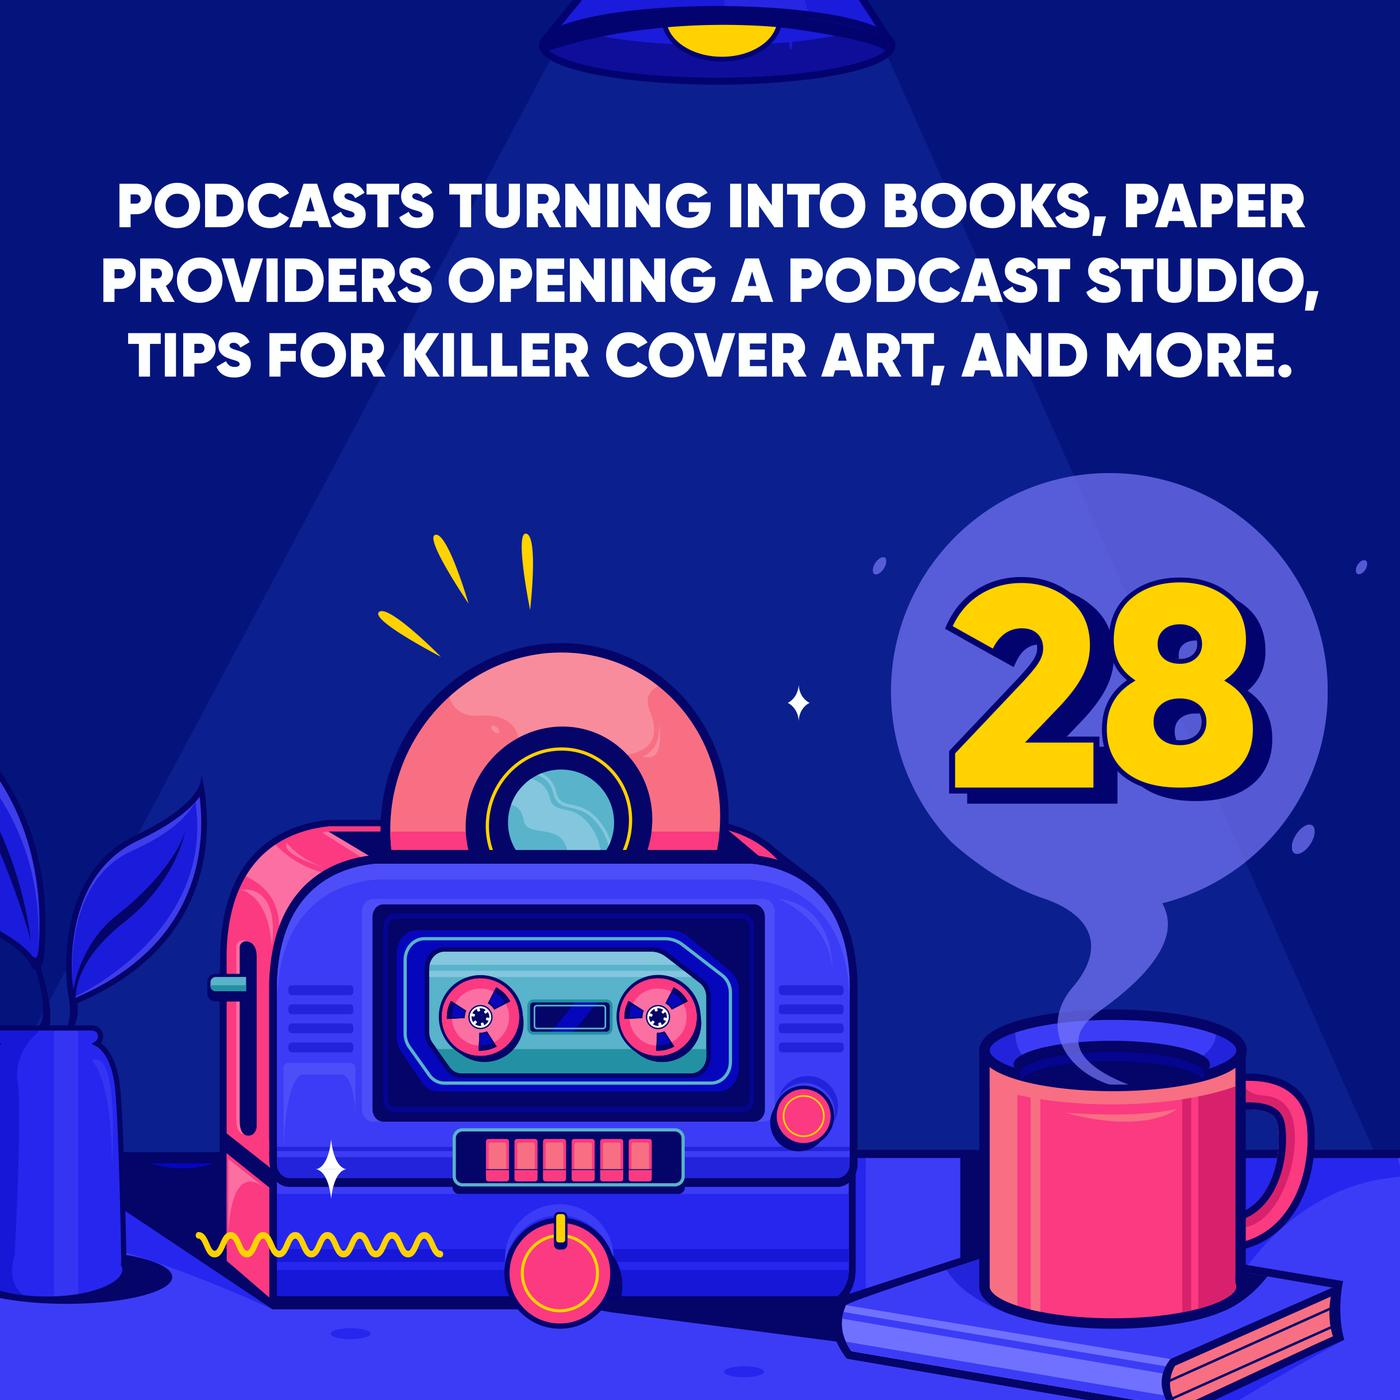 Podcasts Turning into Books, Paper Providers Opening a Podcast Studio, tips for Killer Cover Art, and More.